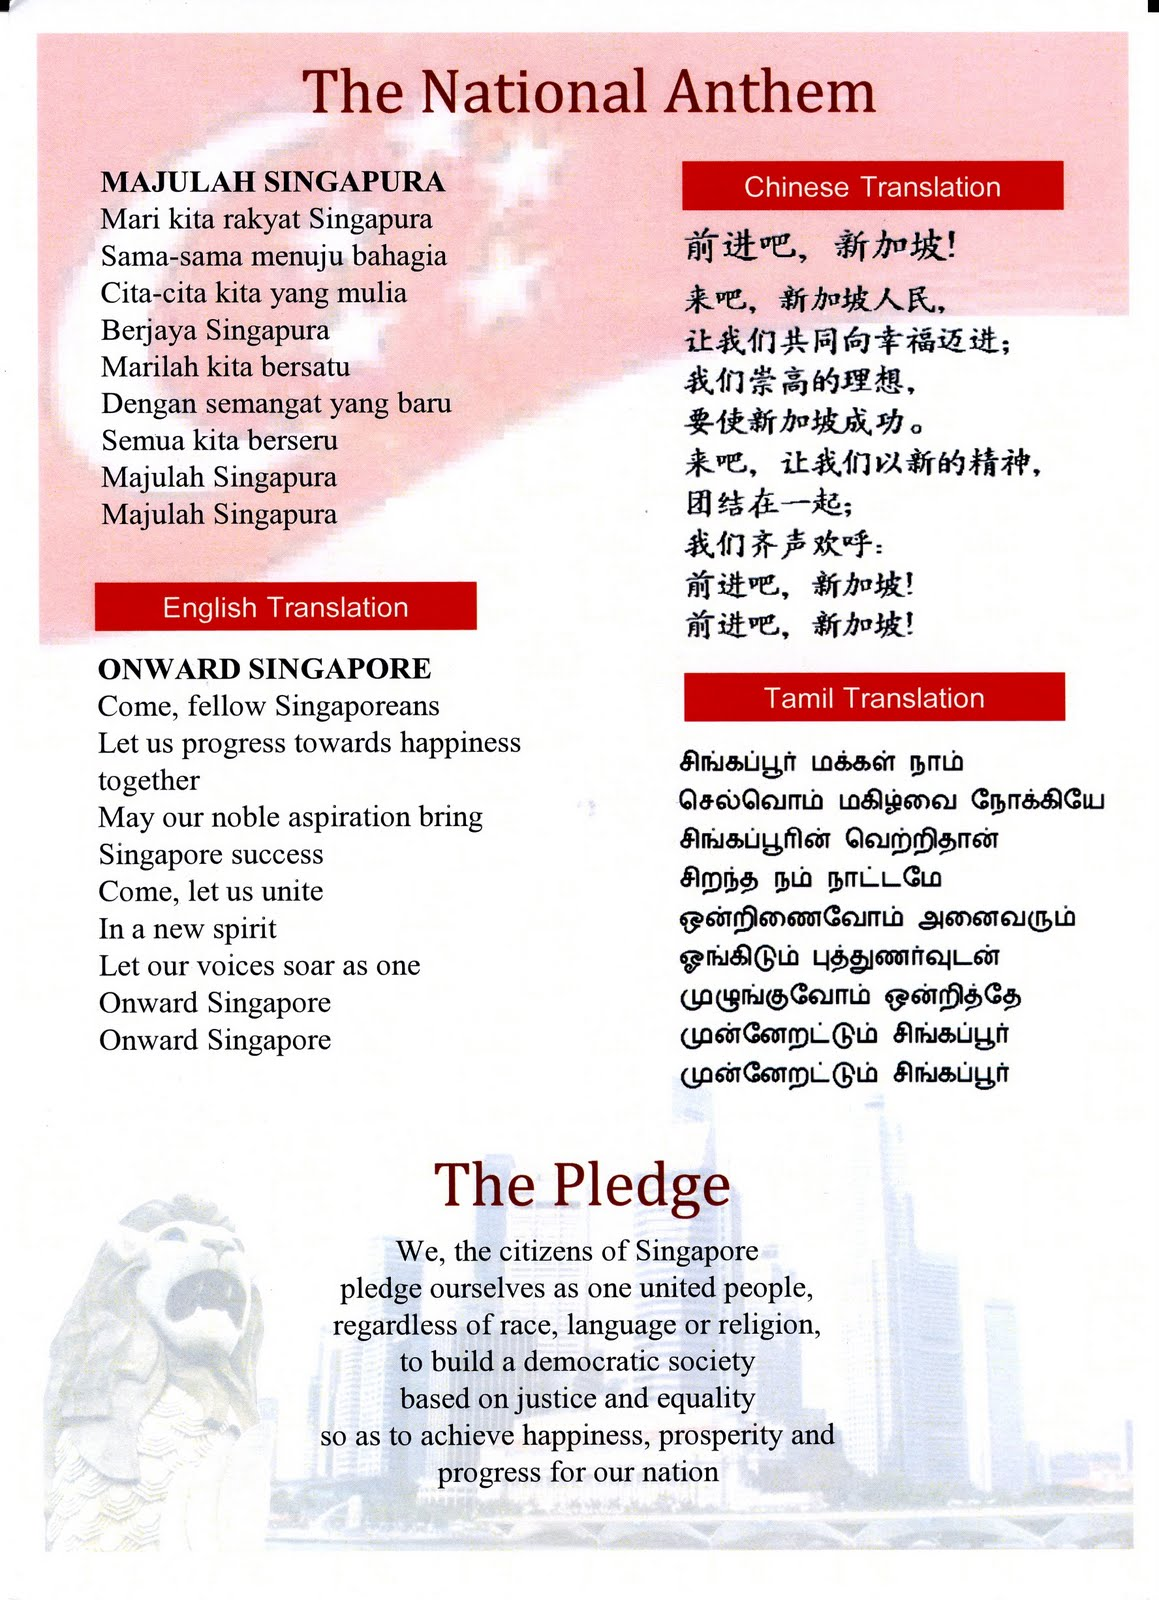 Owen Residents Committee 奥云居委会: Fly Our Flag